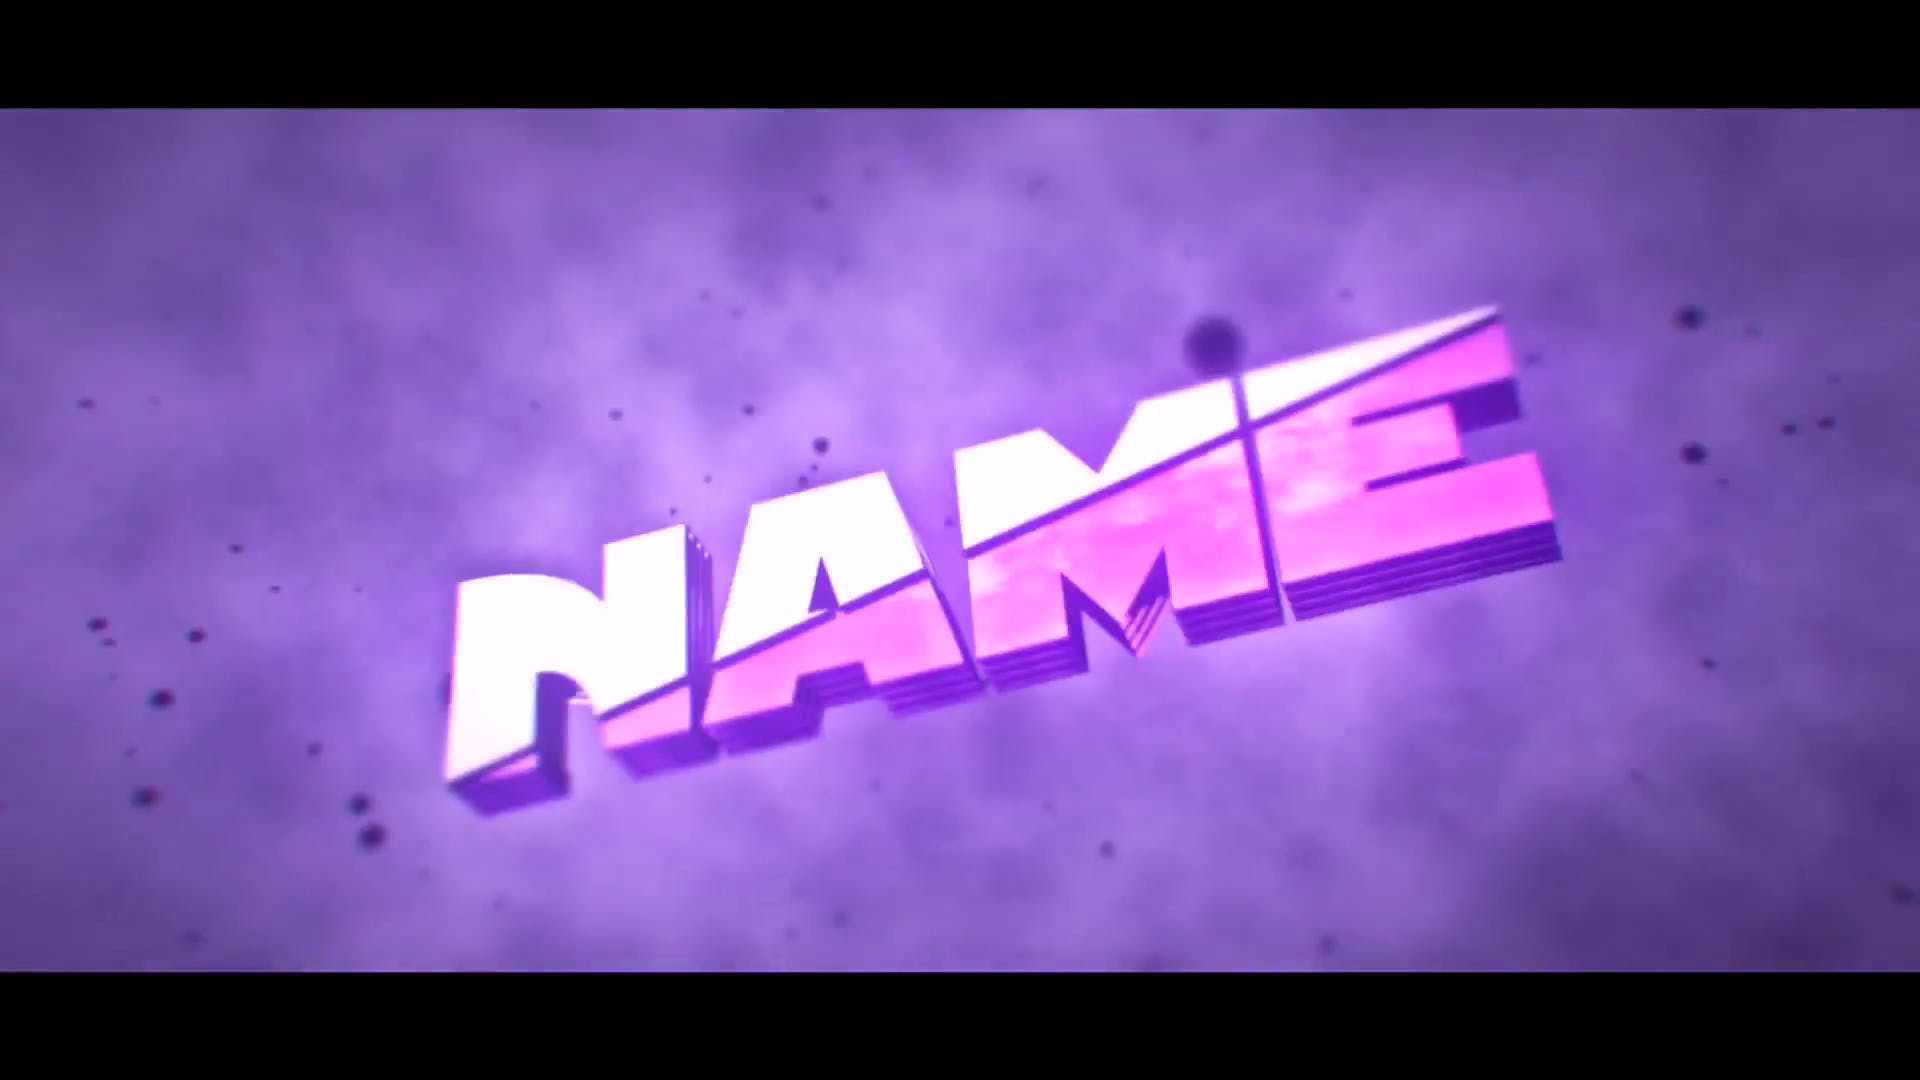 Purple Shockwave Intro Template Cinema 4D After Effects 2016